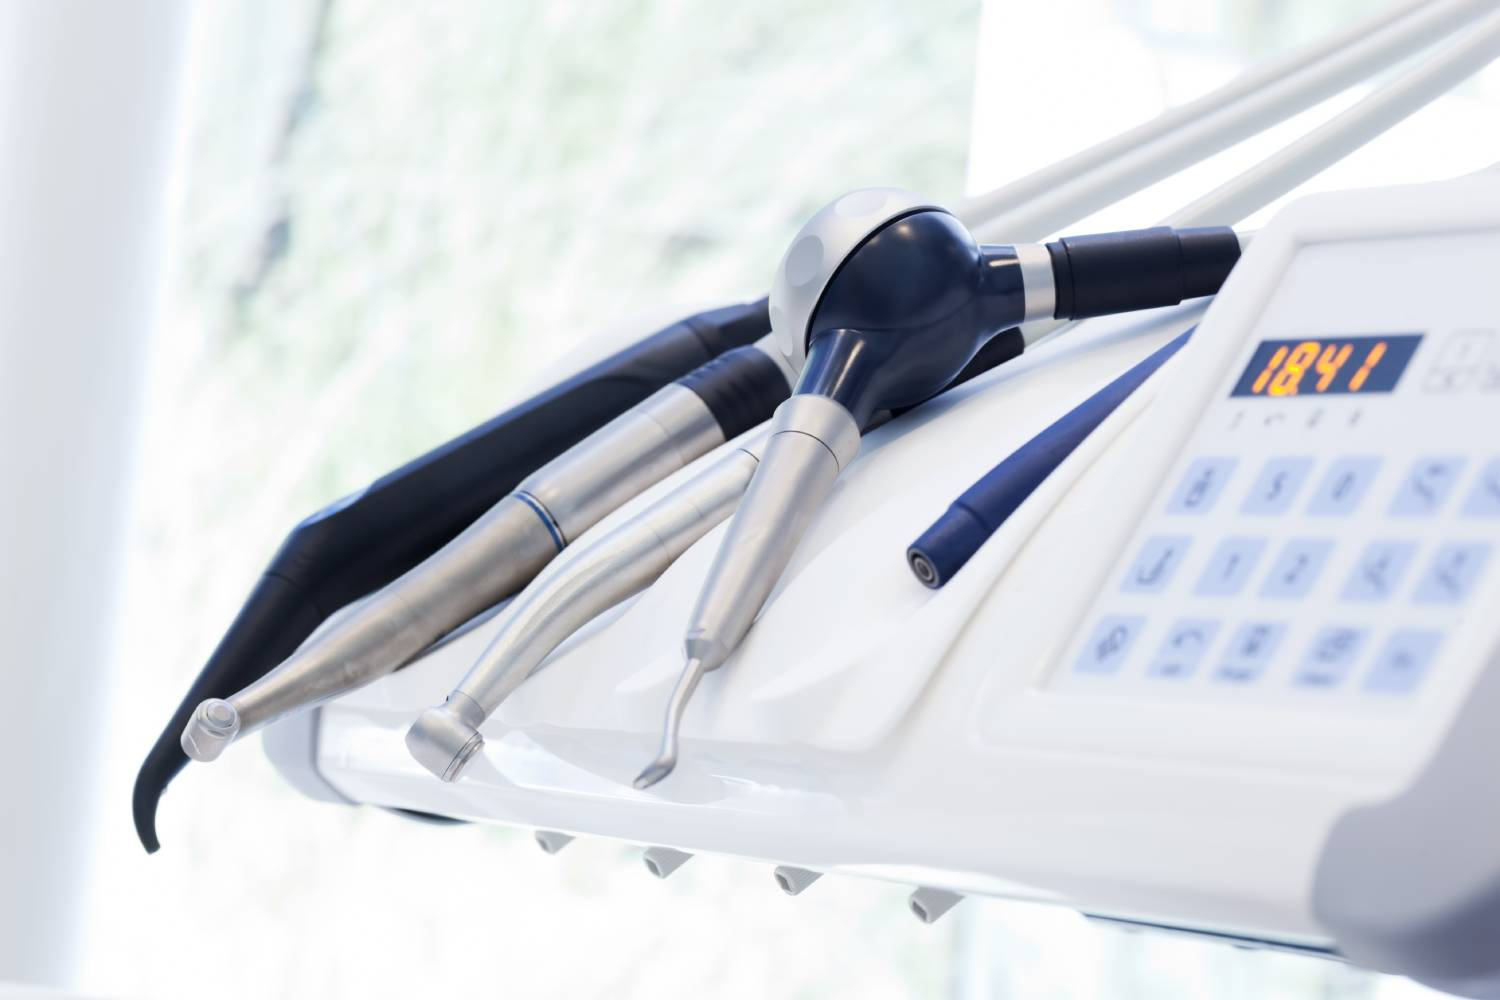 BioMedical-Medical Accessories & Healthcare Supplies